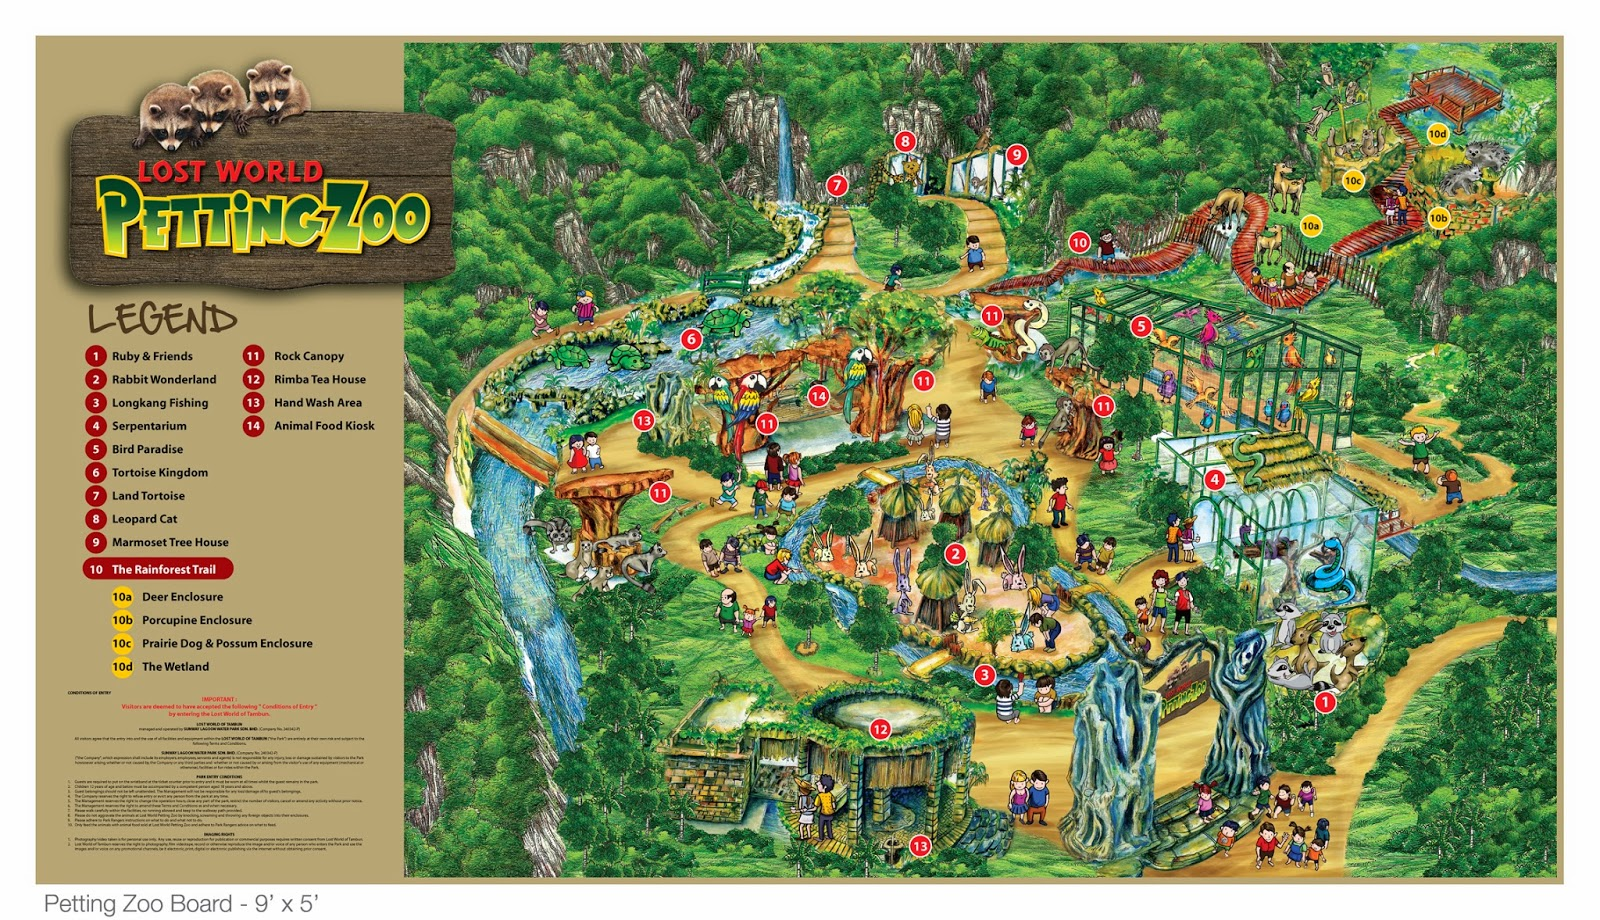 Map to lost world of tambun howmap2008 lwot park map lost world petting zoo map lostworld1 lost world tambun gumiabroncs Choice Image